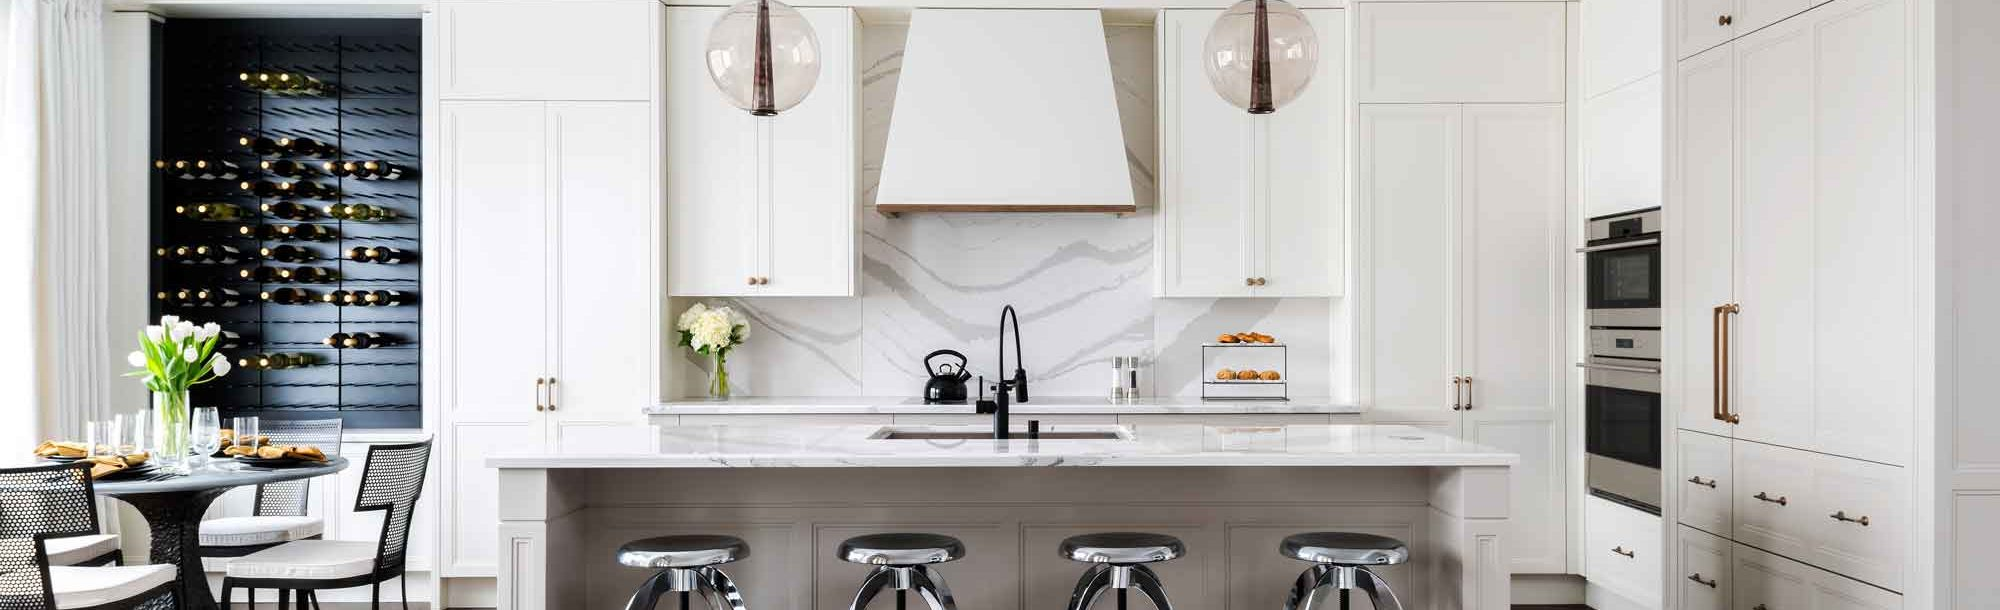 Brittannicca-Cambria-Quartz-Kitchen-Countertops-1 (1)